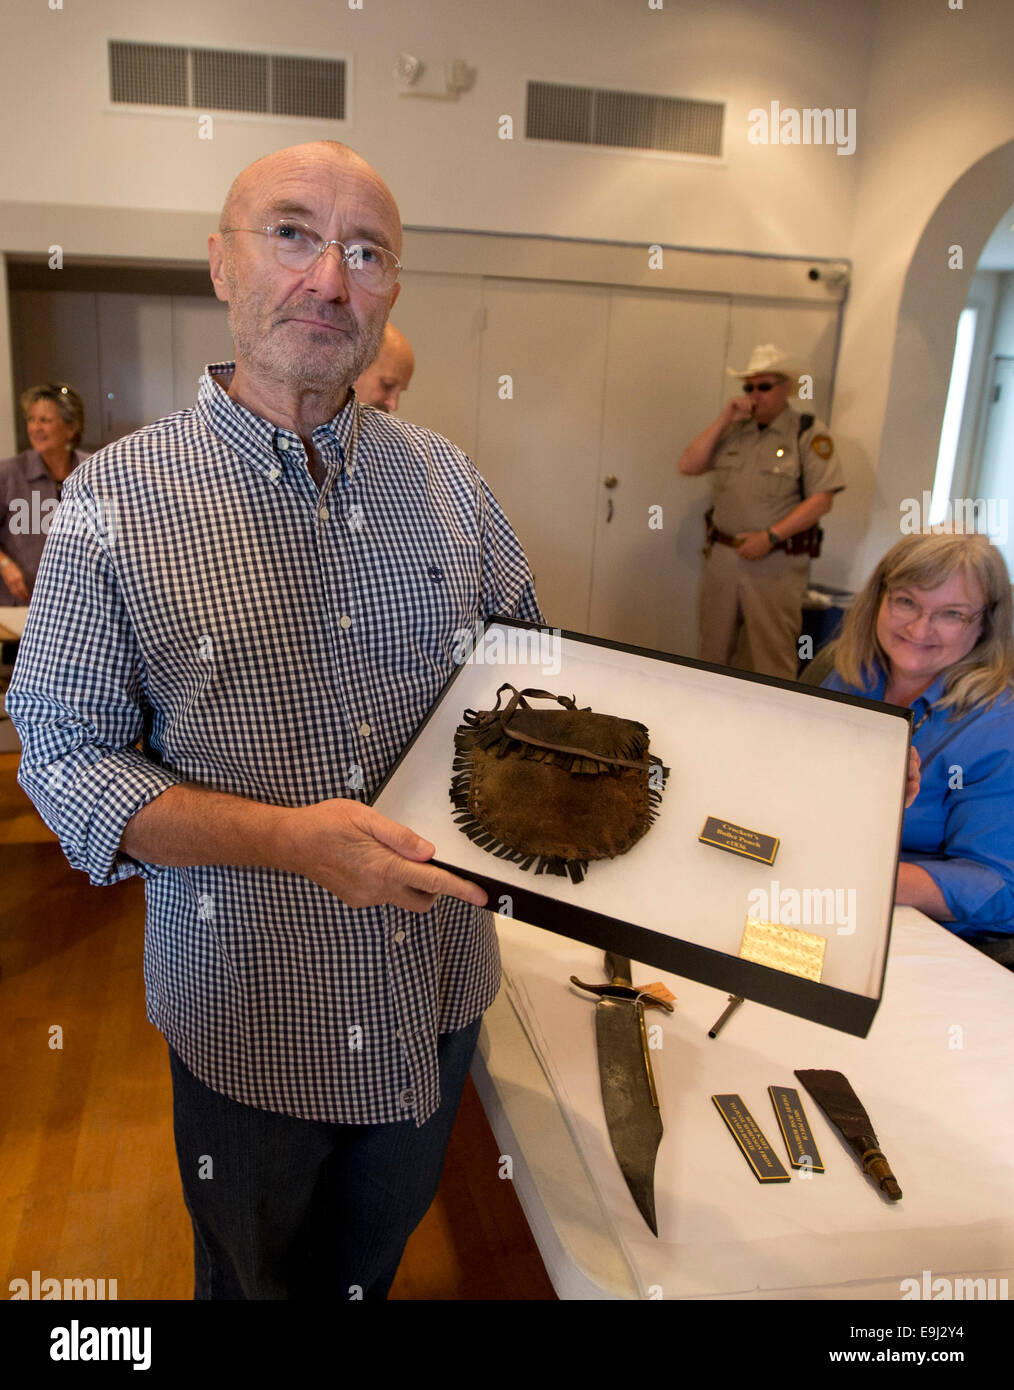 British music legend, Phil Collins donates what is considered the biggest collection of Alamo artifacts to the people - Stock Image